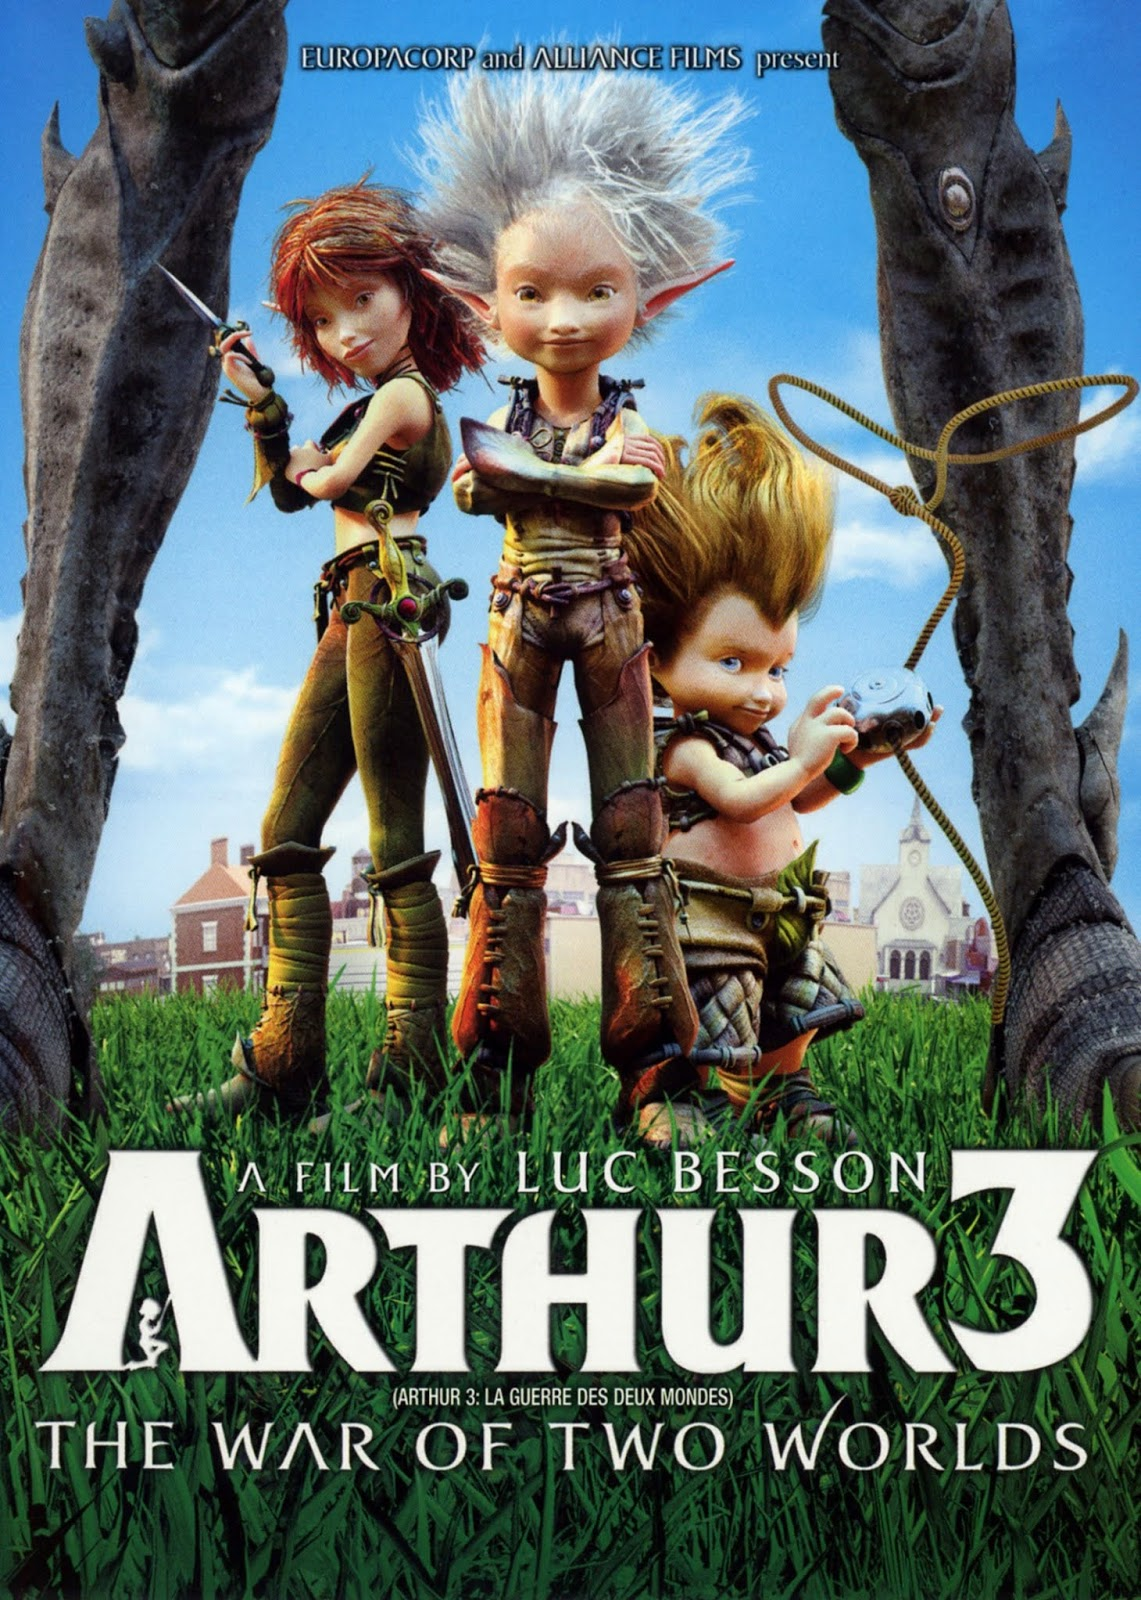 Arthur 3: The War of the Two Worlds 2010 Dual Audio Hindi English 720p BluRay Full Movie Free Download